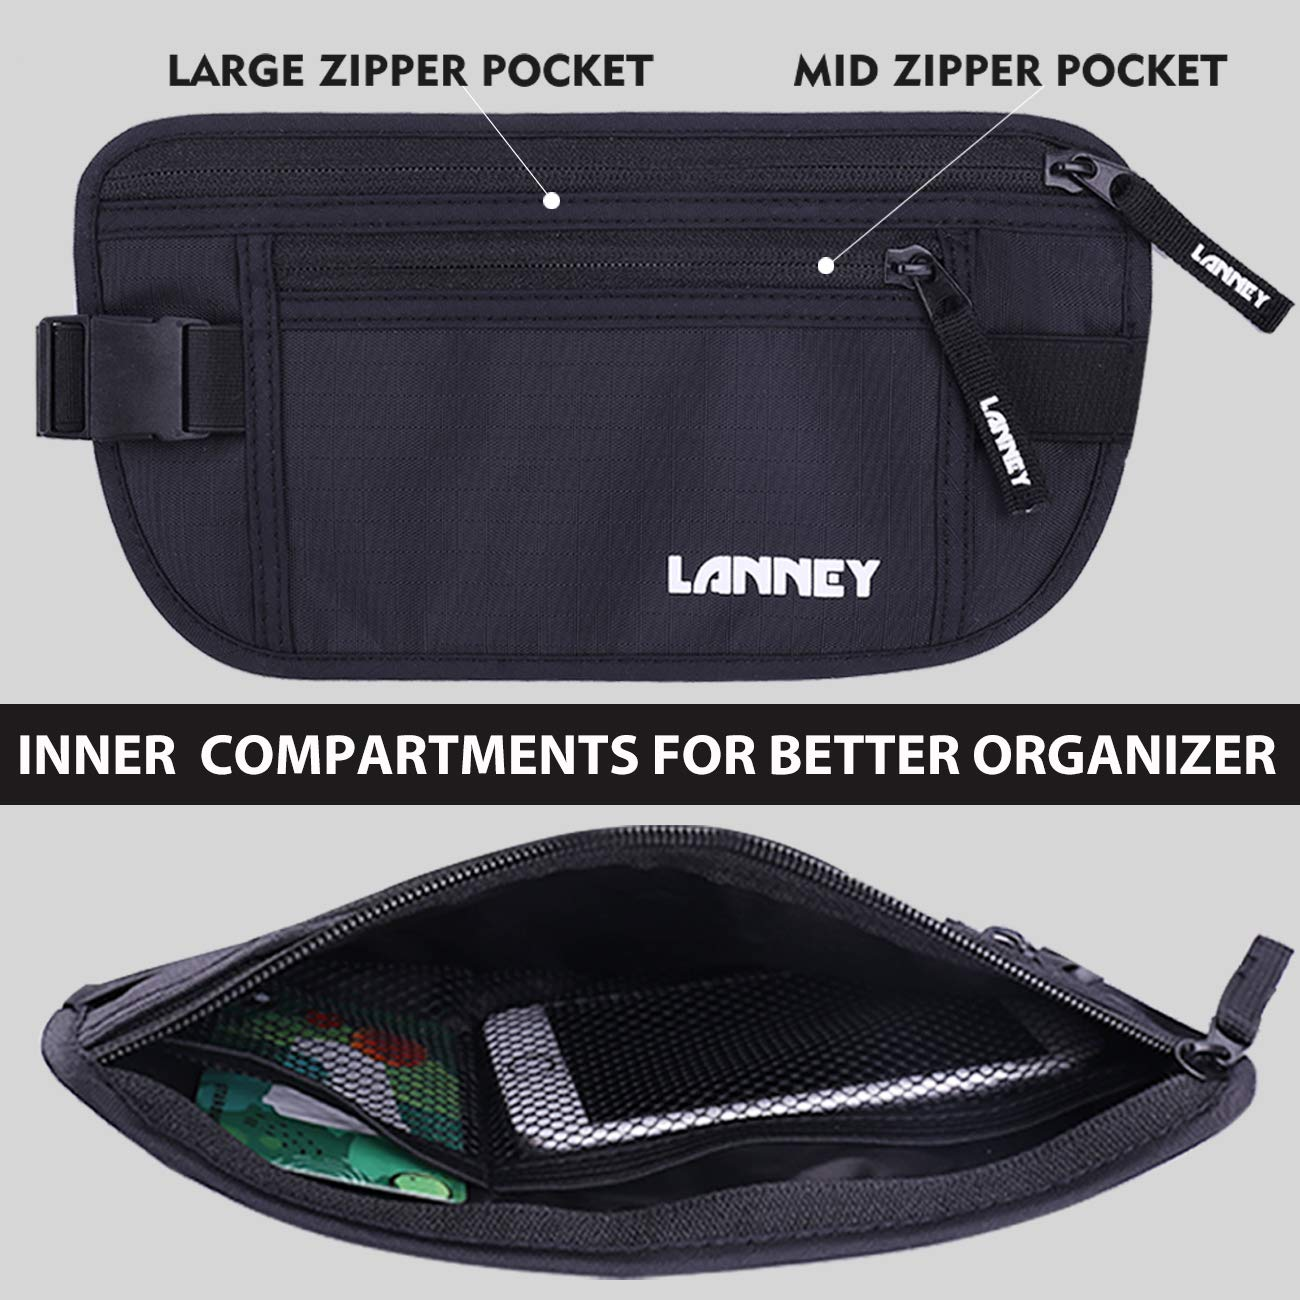 Travel Money Belt Blocking Wallet For Credit Card & Passport Holder With 2pcs RFID Sleeves (Black) by LANNEY (Image #4)